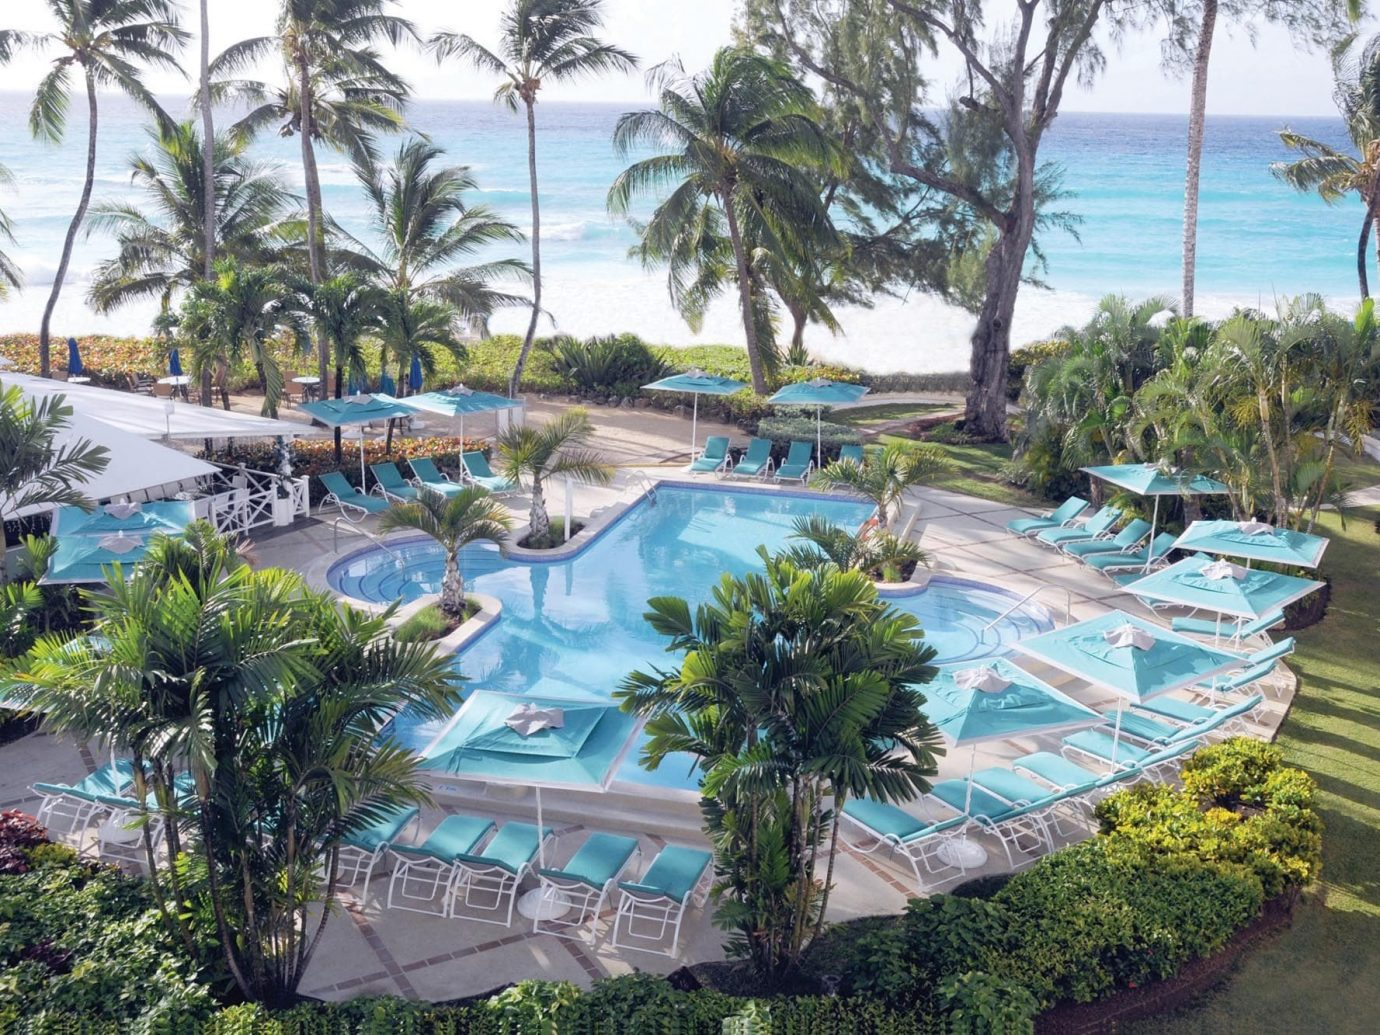 All-Inclusive Resorts Hotels tree outdoor Resort swimming pool palm leisure plant resort town palm tree arecales real estate estate condominium vacation tourism hotel recreation lined shade